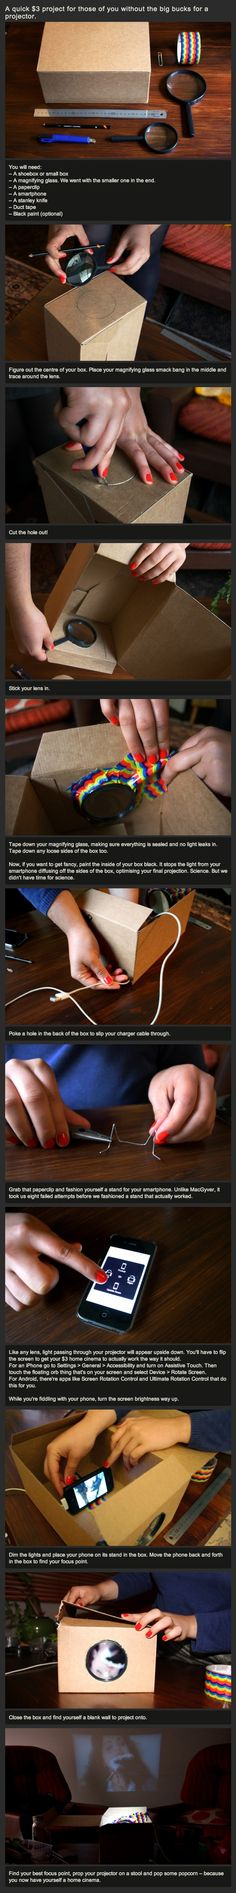 DIY $3 smartphone projector I so want to try this now with my little sister!